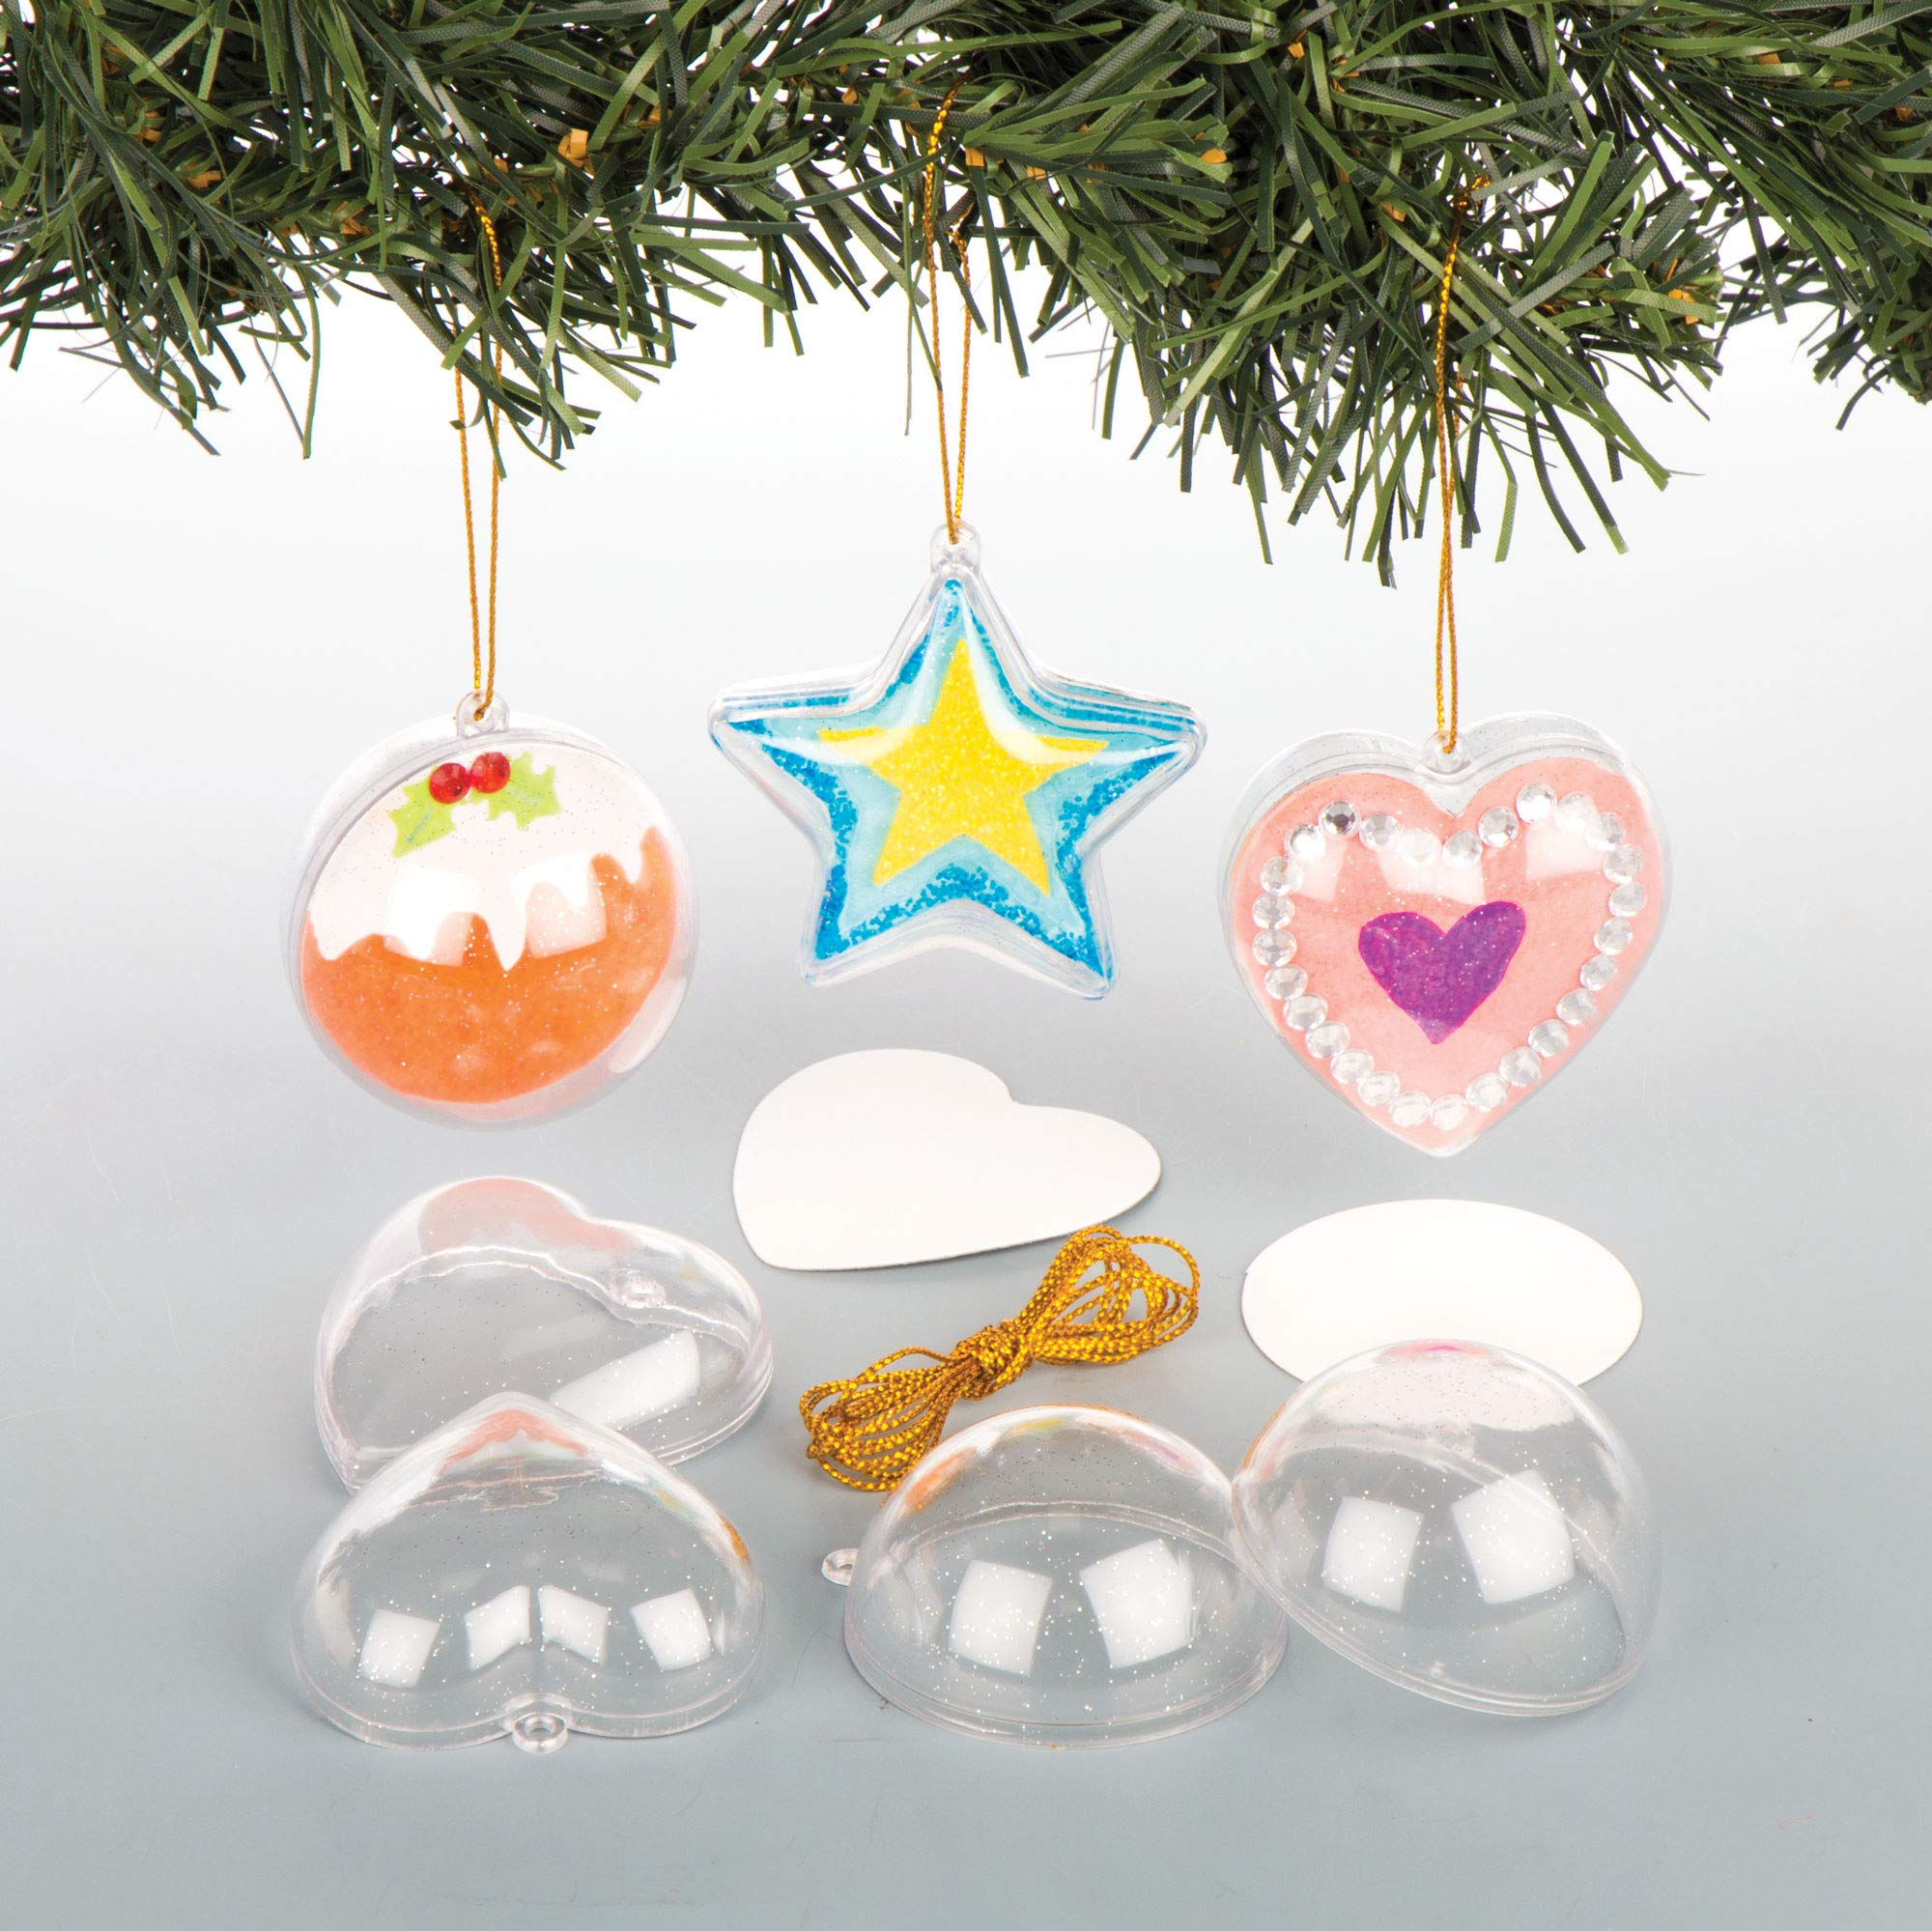 Baker Ross Hanging Glitter Baubles for the Christmas Tree— Creative Art and Craft Supplies for Kids to Make, Personalise and Decorate (Pack of 9)